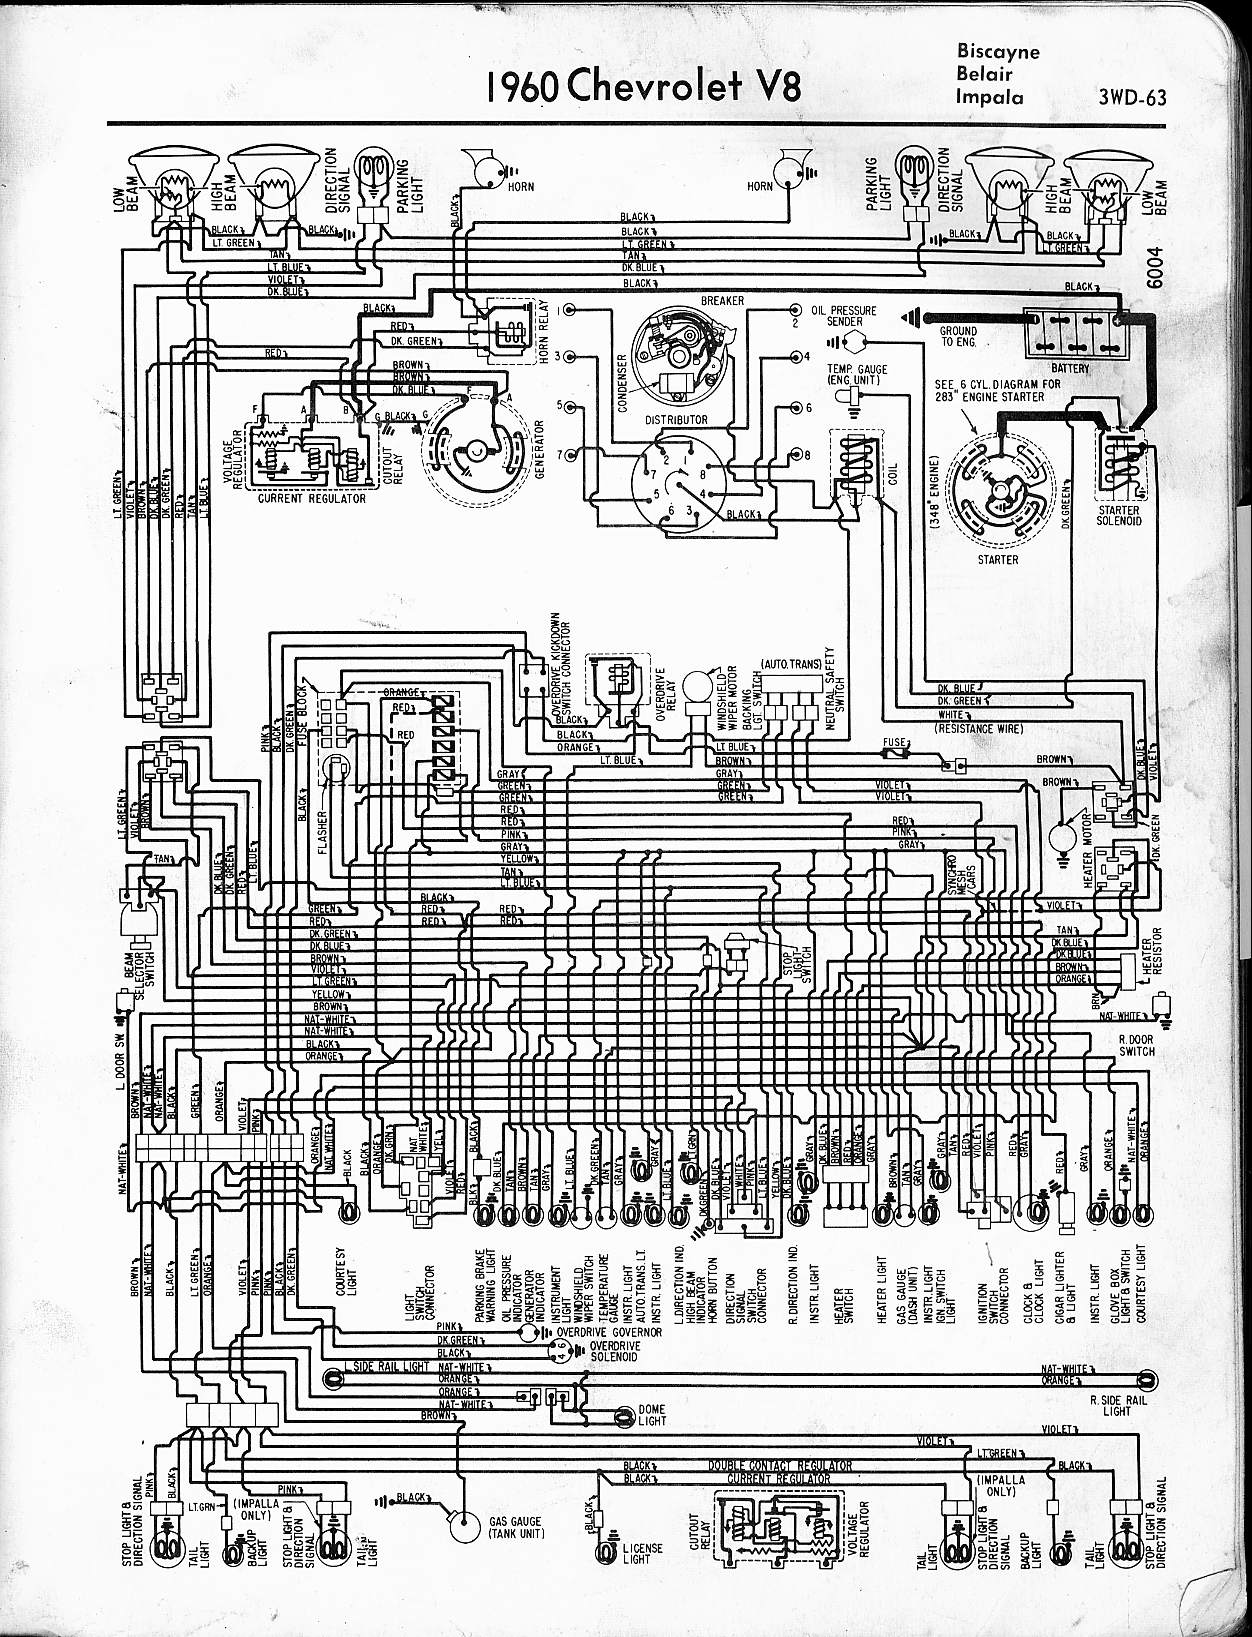 Brilliant 65 Ford Falcon Wiring Diagram Basic Electronics Wiring Diagram Wiring Cloud Apomsimijknierdonabenoleattemohammedshrineorg